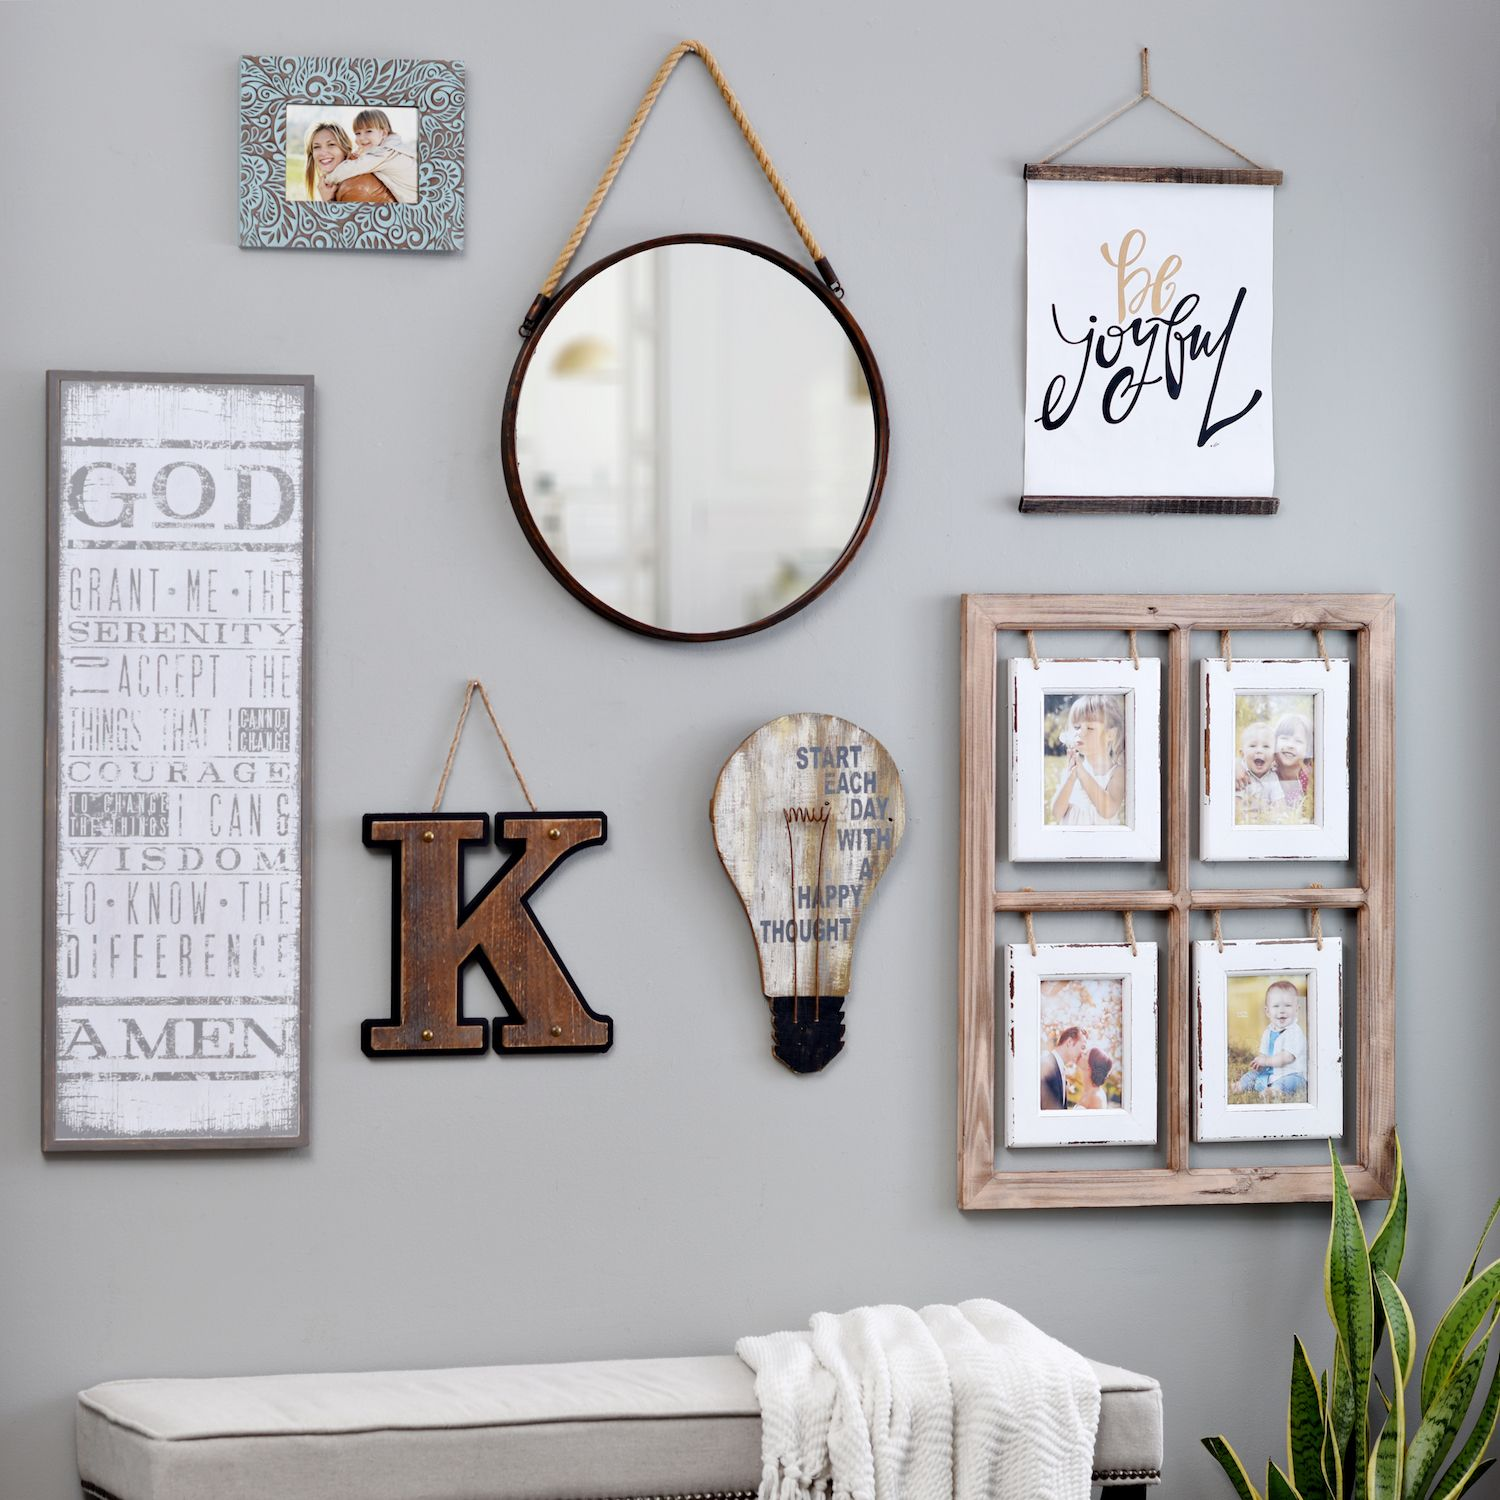 Mix And Match All Types Of Wall Decor For An Eclectic Gallery Wall Hang Your Favorite Wall Quotes Next To Pictu Wall Decor Photo Wall Decor Wall Decor Bedroom